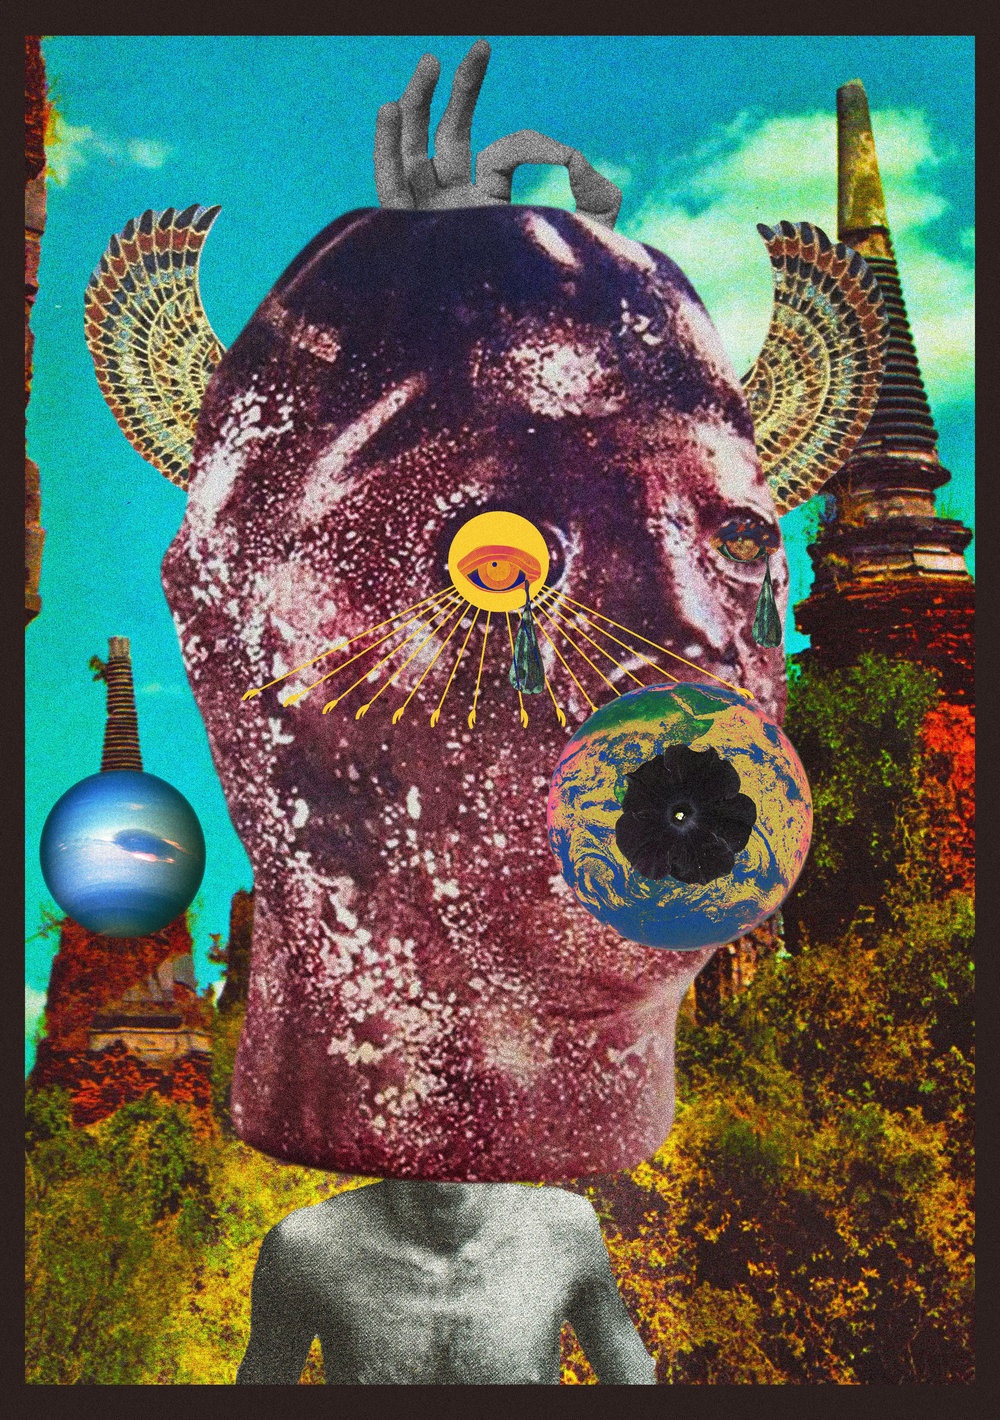 The One Who Came Before I [collage, 2016]